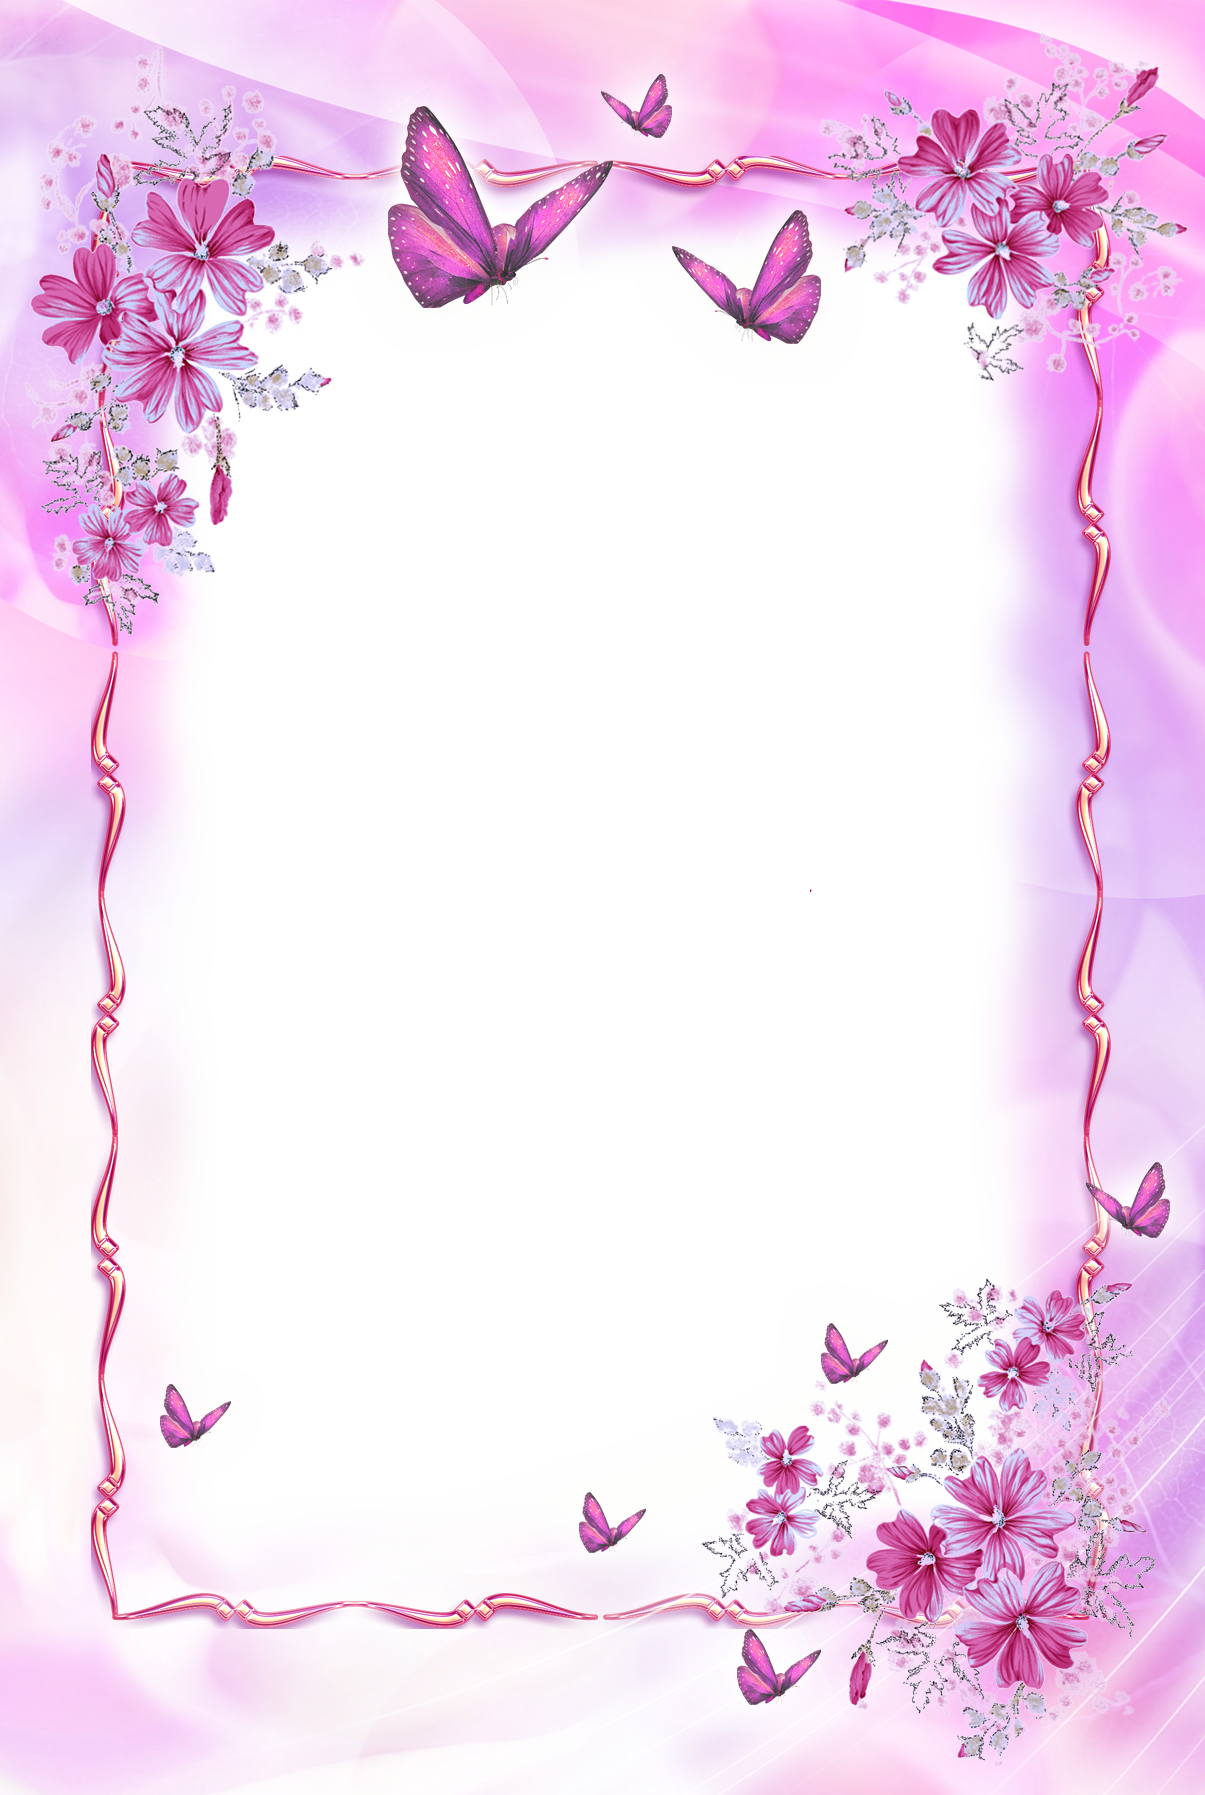 Pink Transparent Frame with Butterflies | BUTTERFLY 2 | Pinterest ...